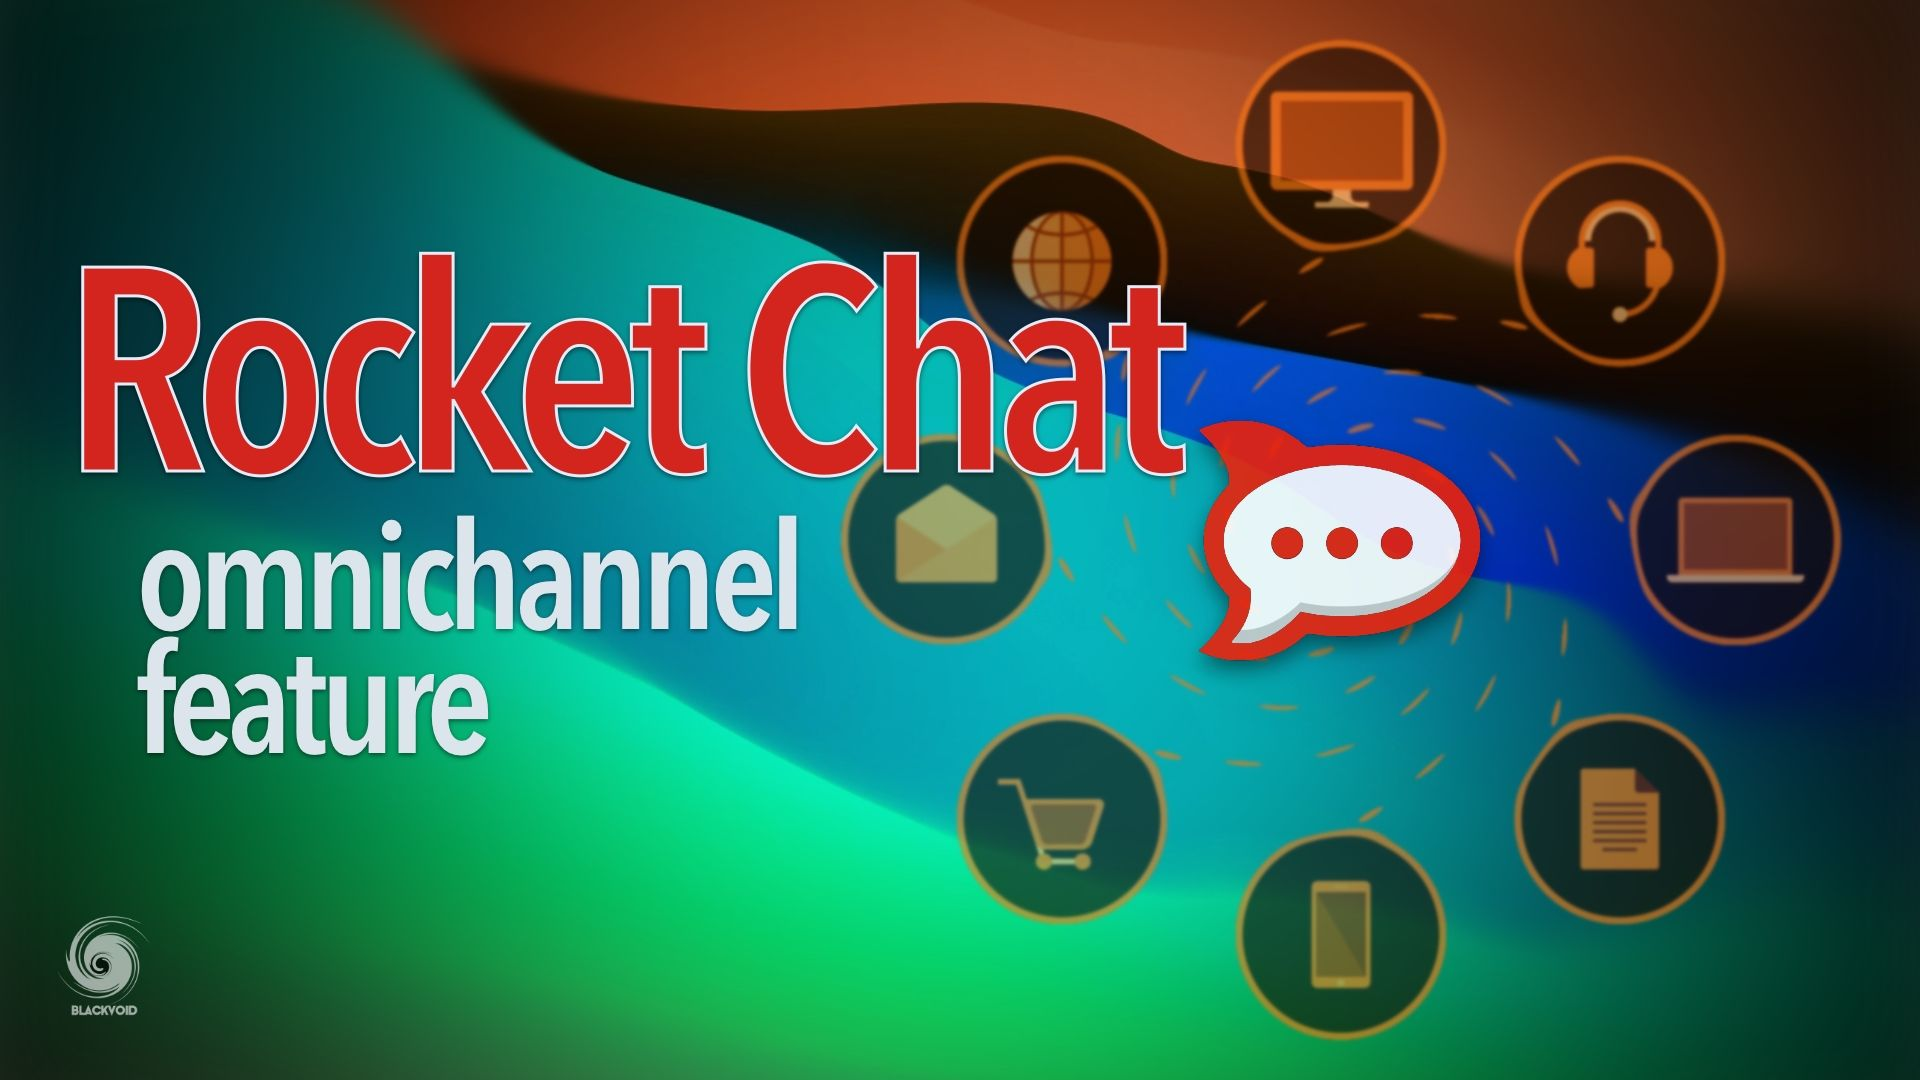 Rocket.Chat - Omnichannel feature